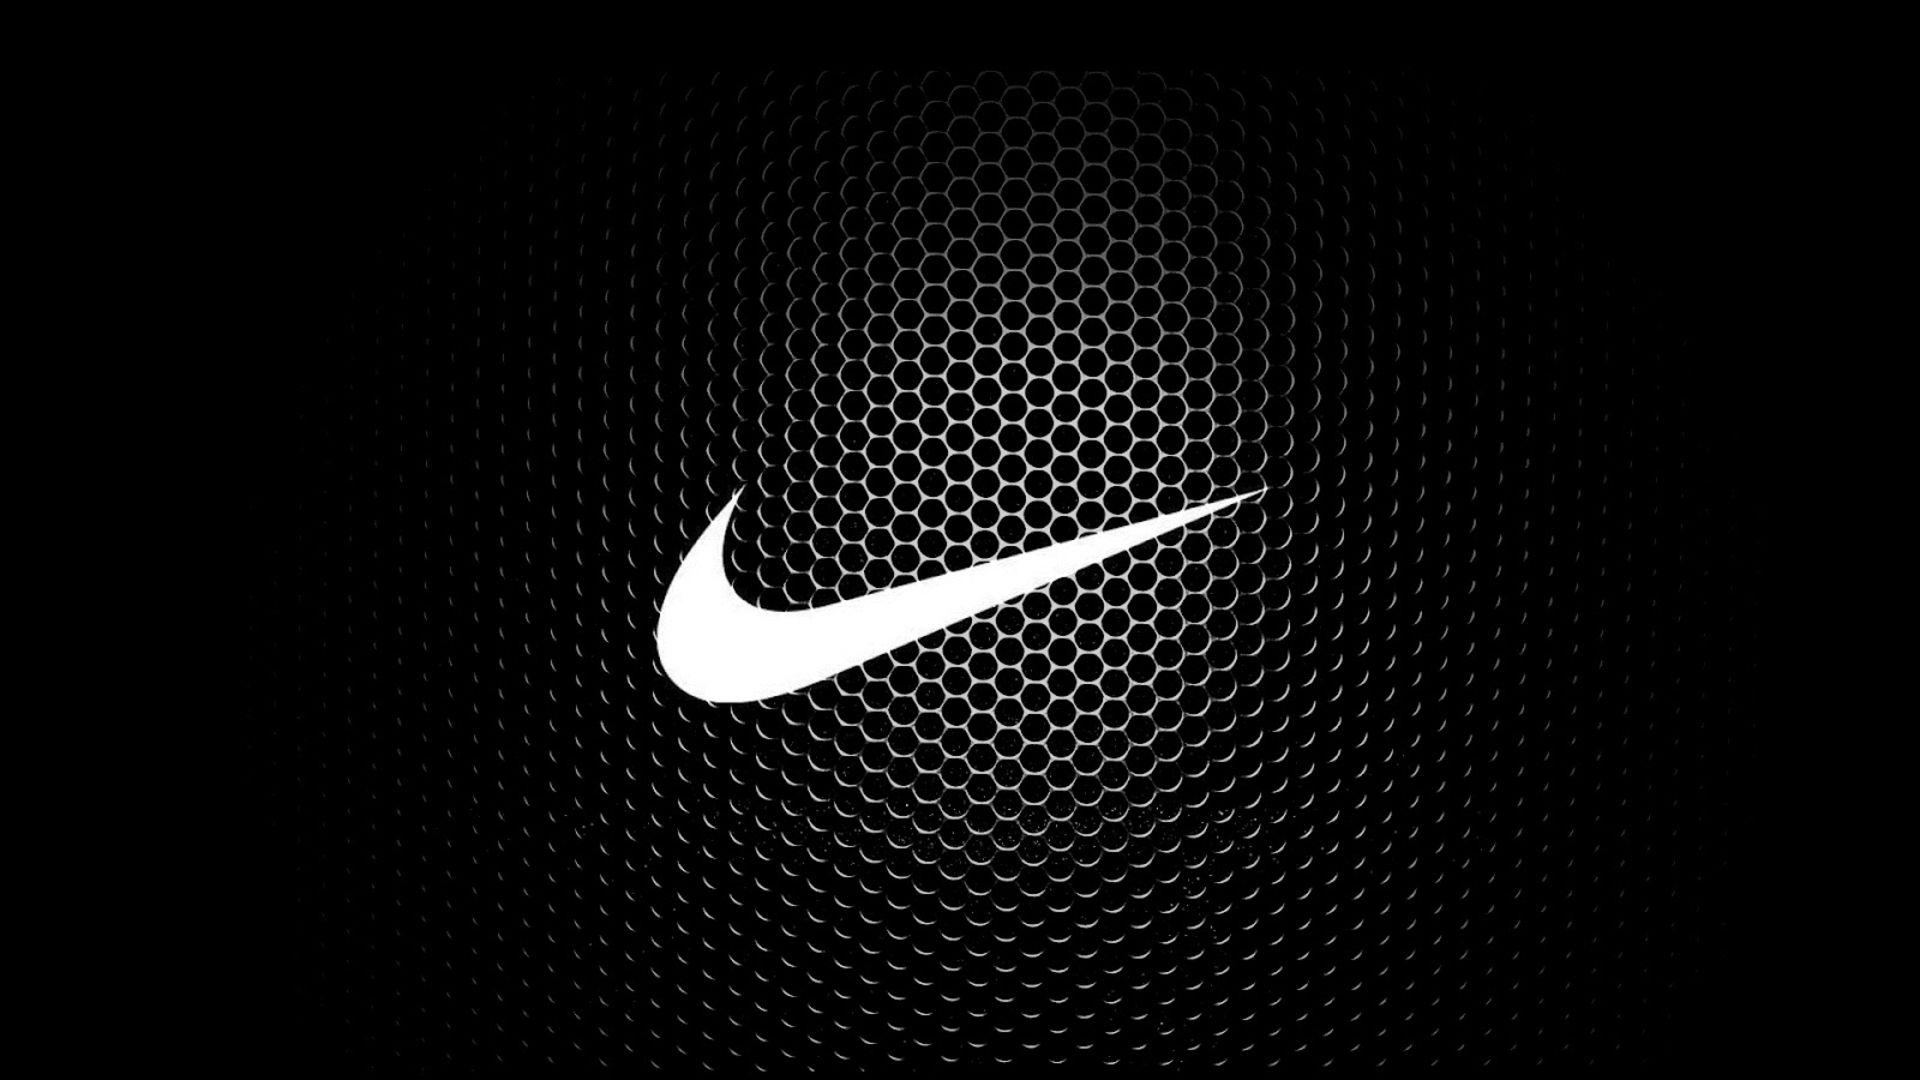 Nike Wallpaper Backgrounds 1920x1080